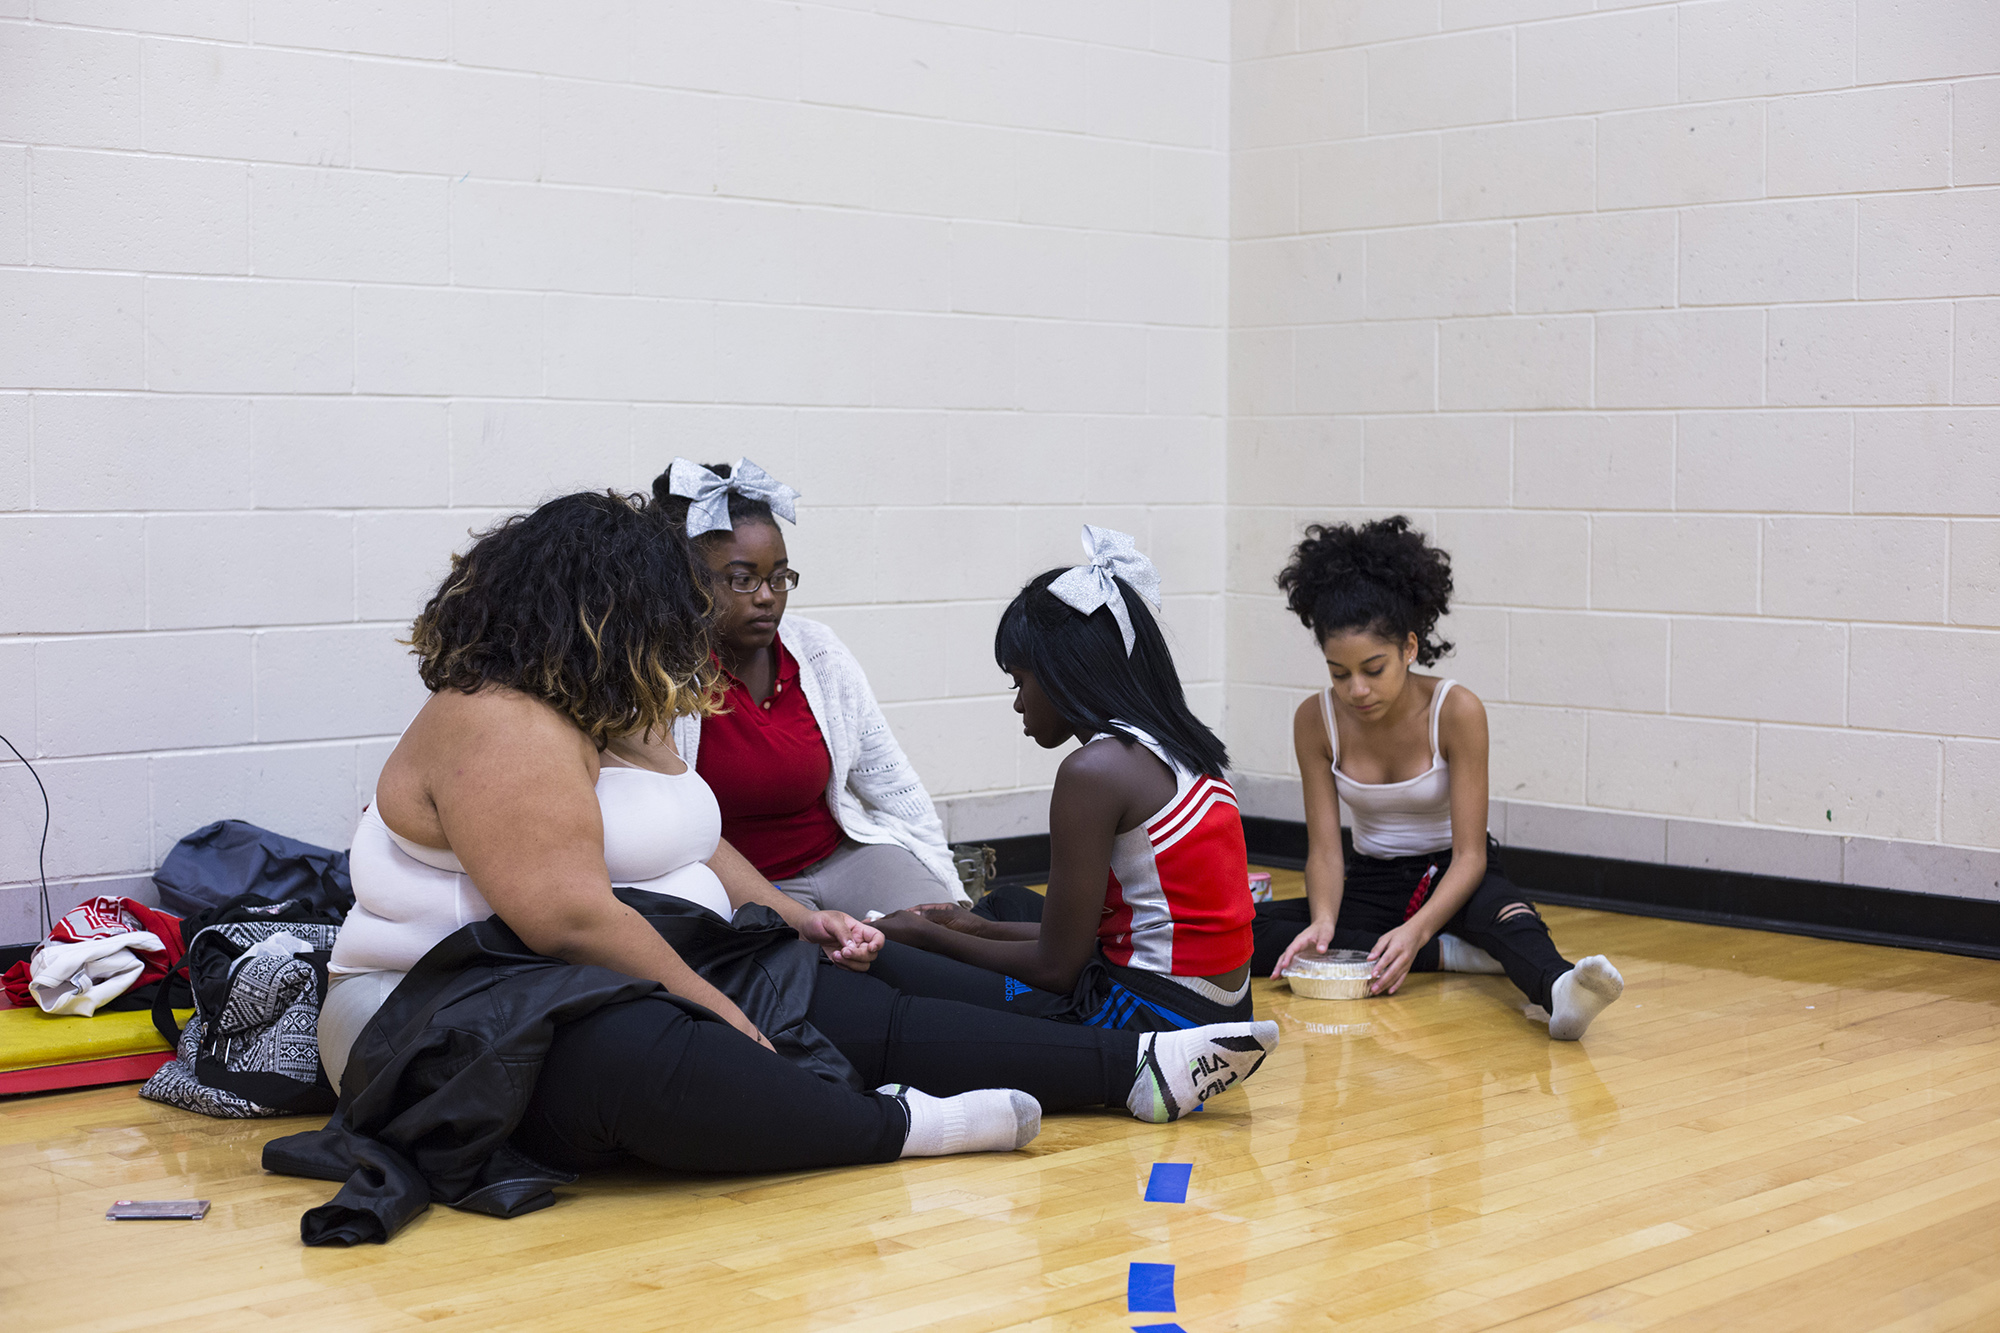 London Gladden, 17, (second from right) is consoled by her friends and teammates after a boy made a remark that made her cry before cheerleading practice at the High School of Commerce in Springfield, Mass., on Friday, September, 8, 2017. (Brittany Greeson/GroundTruth)